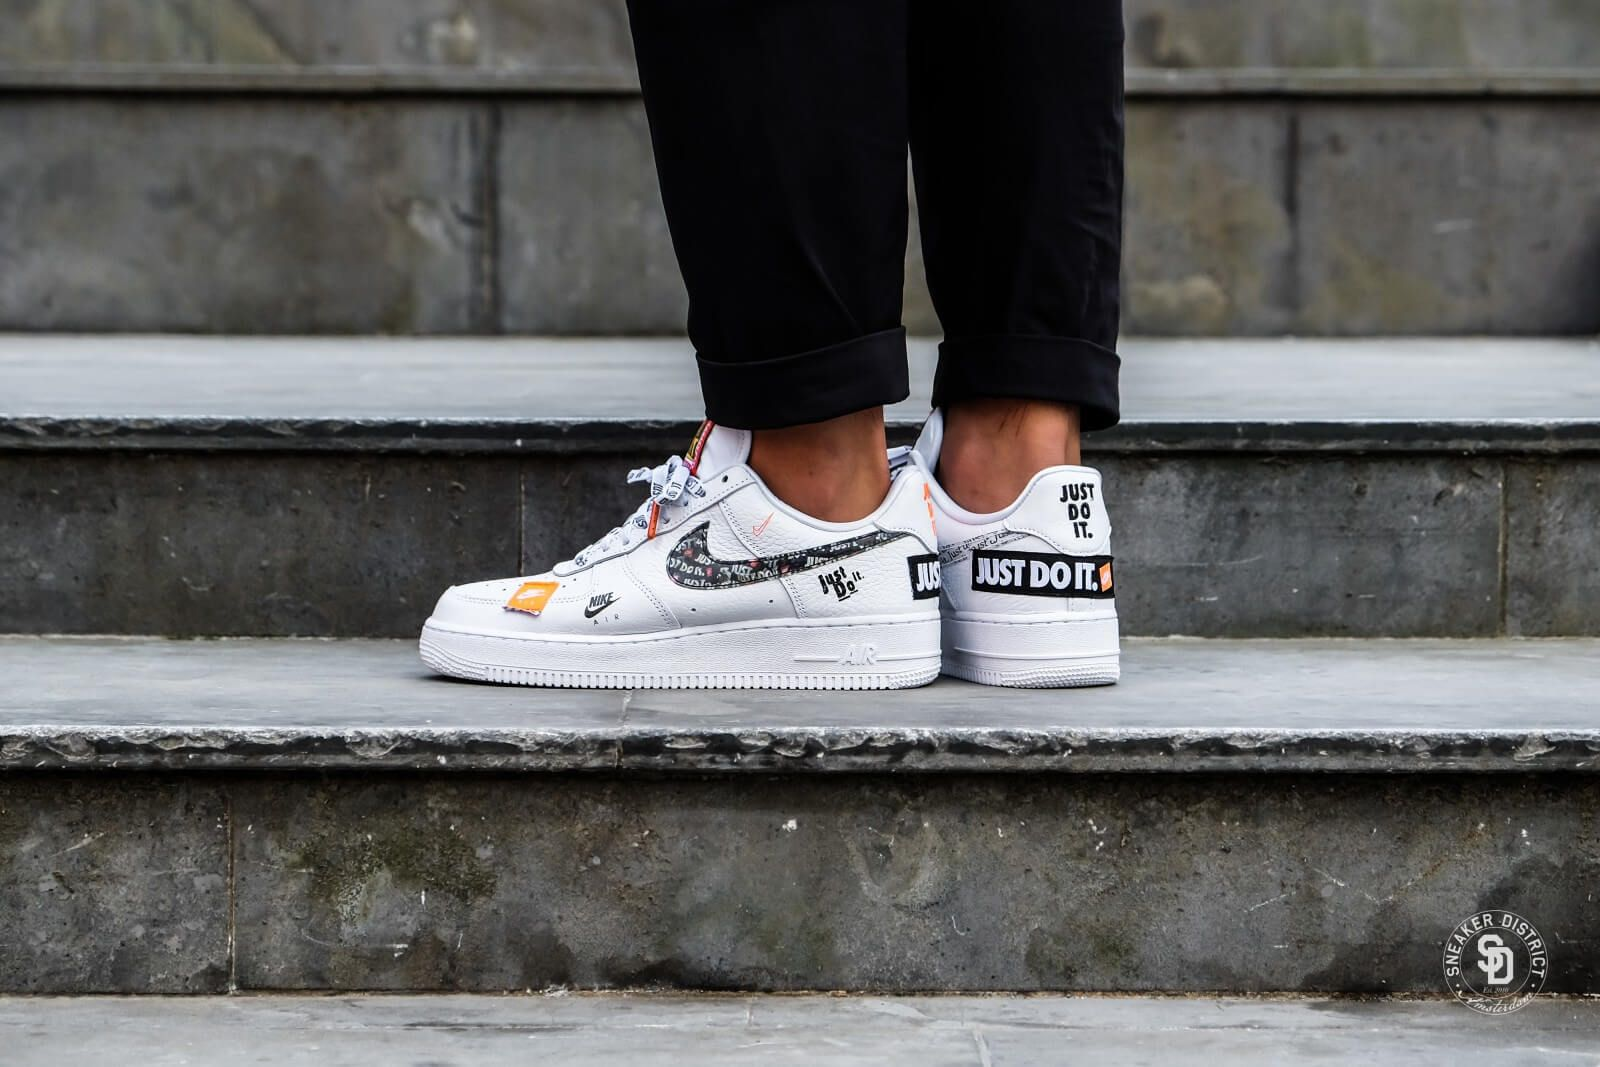 Nike Air Force 1 07 Just Do It White Black Total Orange Nel 2020